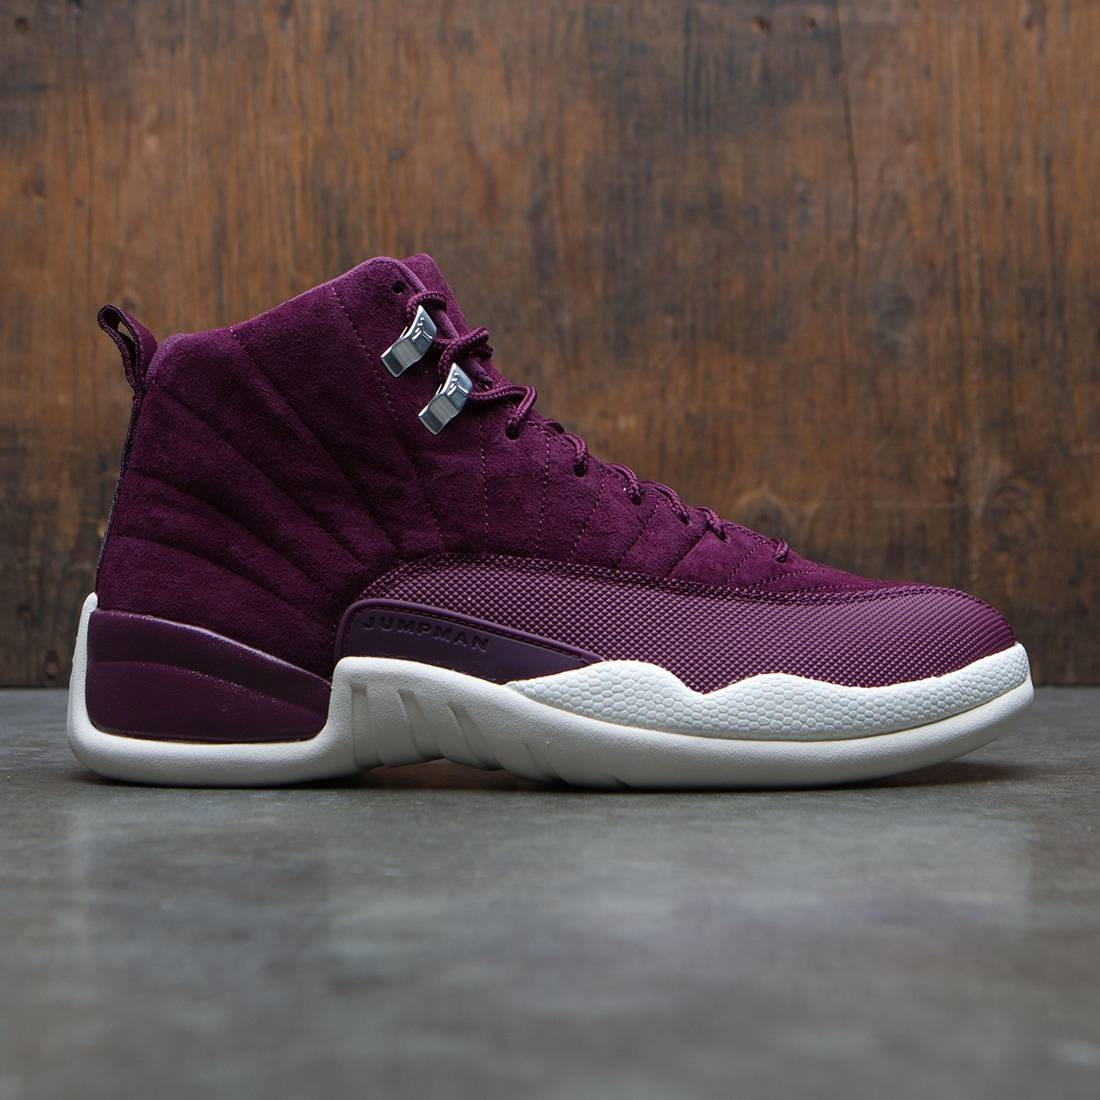 1fc9eaea65d2 jordan men air jordan 12 retro burgundy bordeaux sail metallic silver